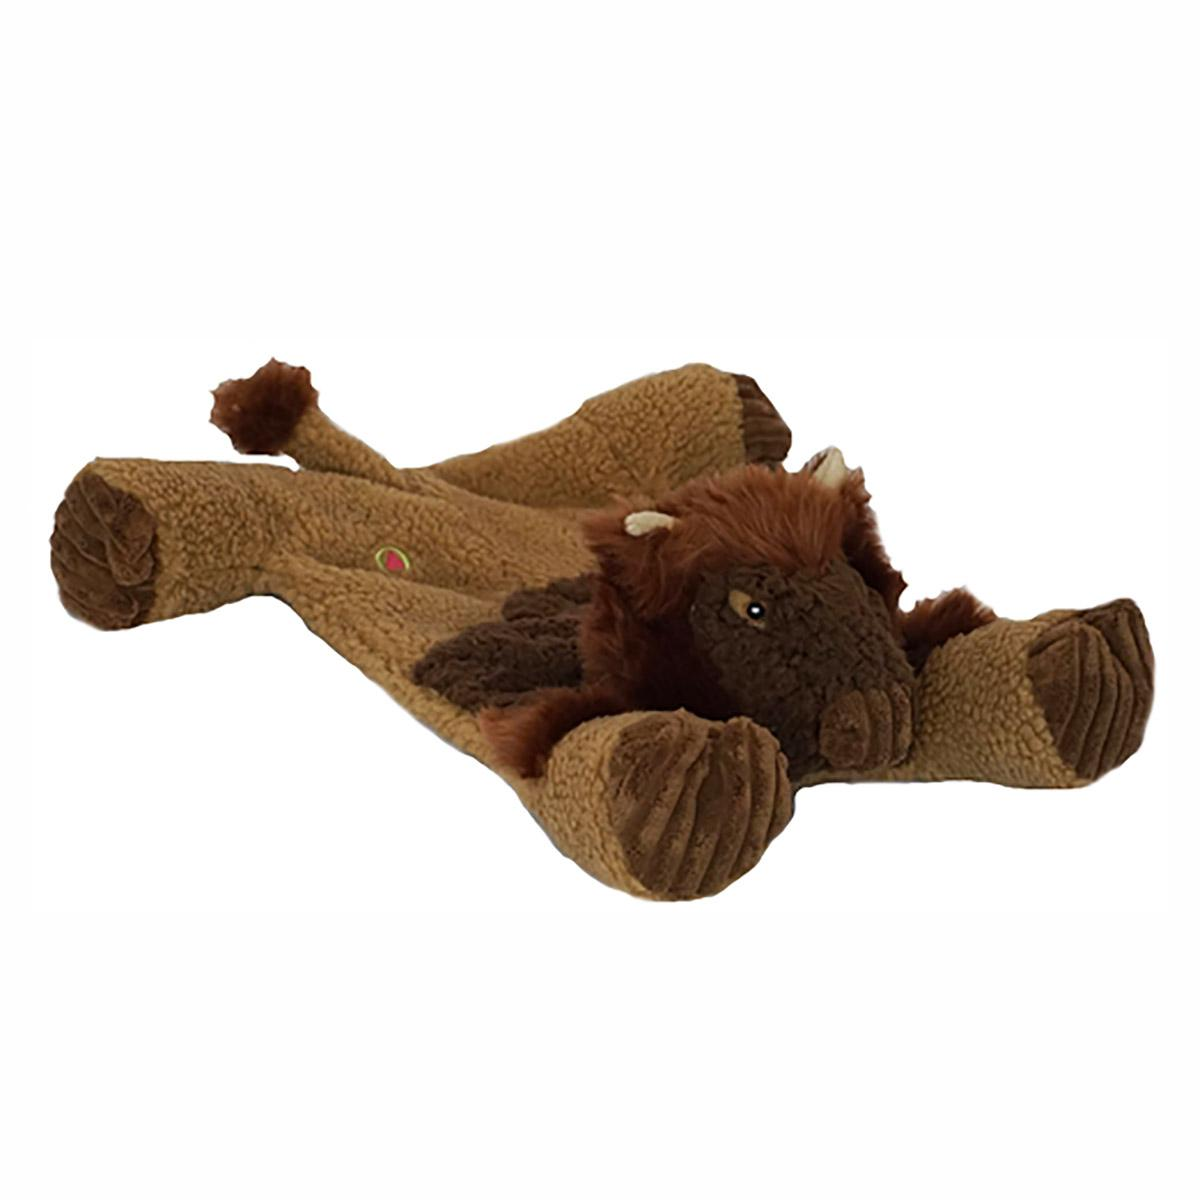 HuggleHounds Flatties Dog Toy - Bison